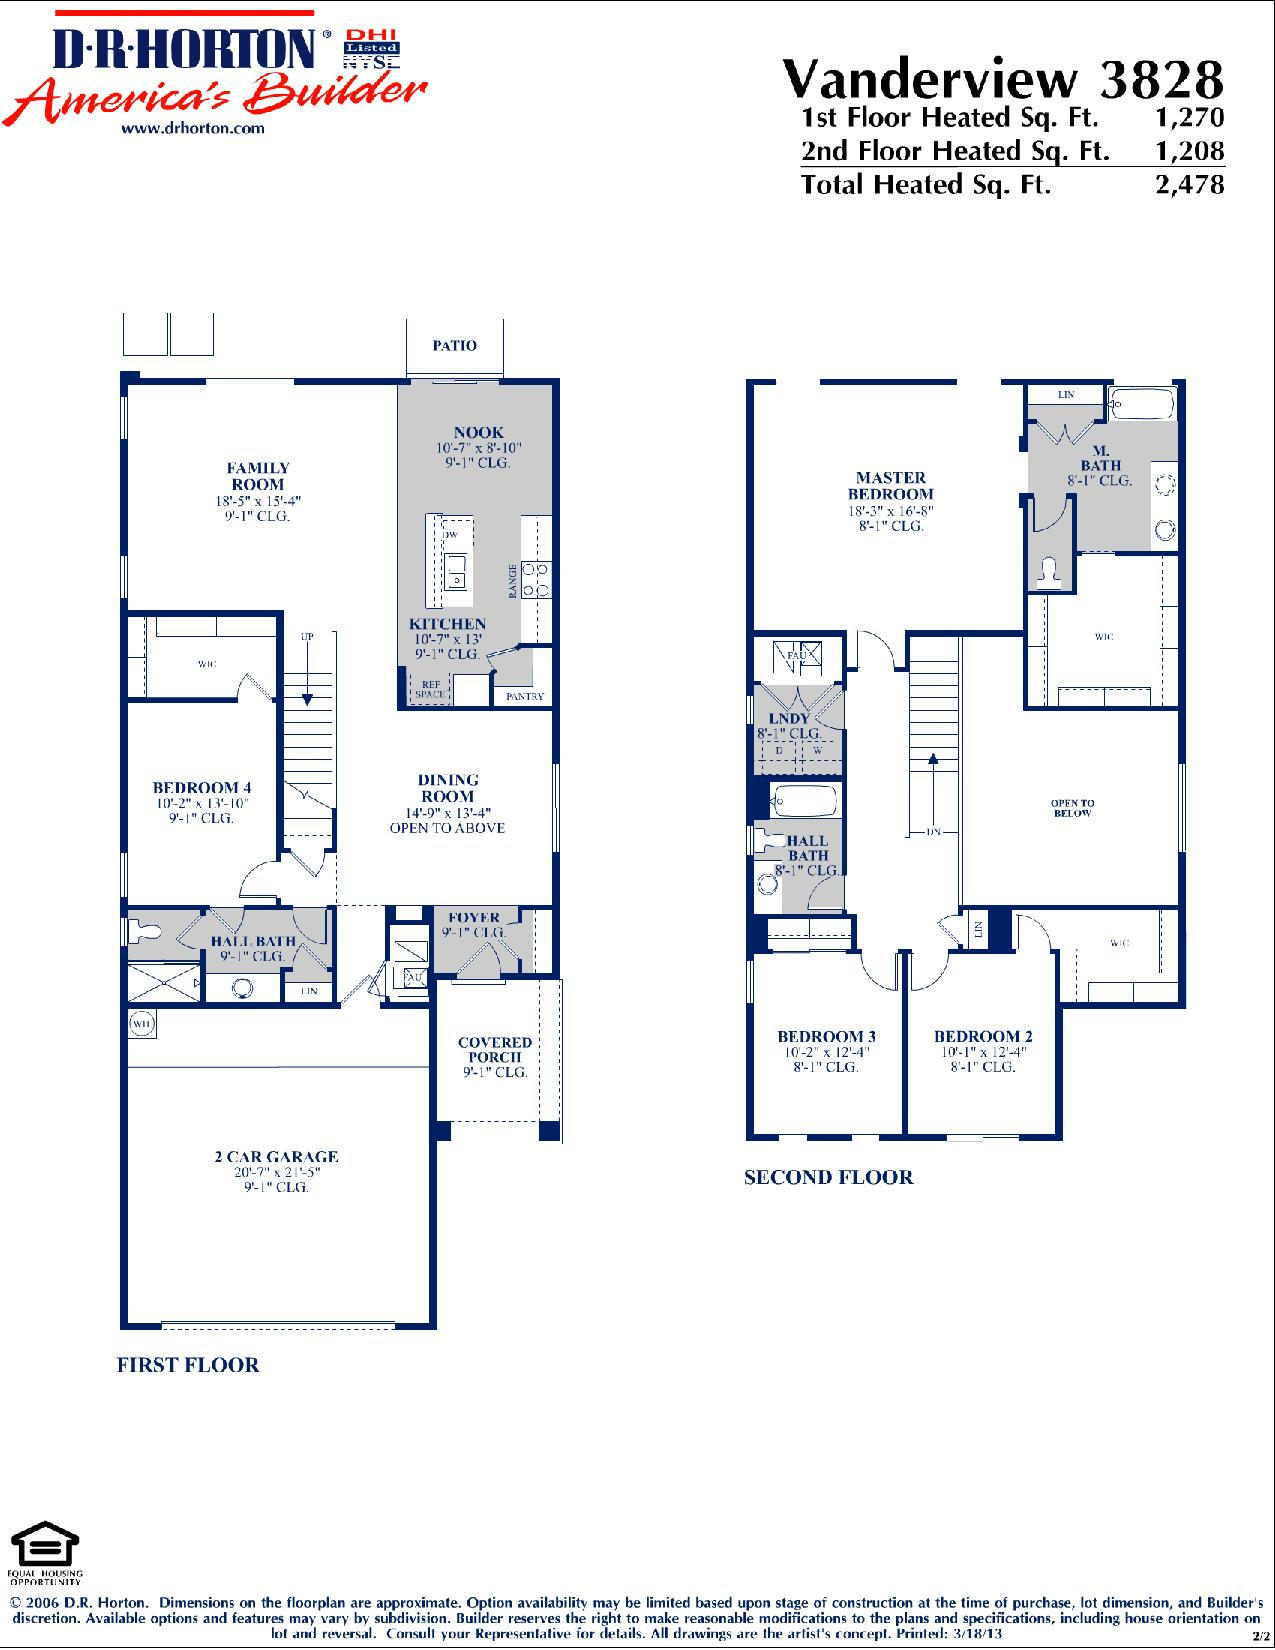 Dr Horton Vanderview Floor Plan